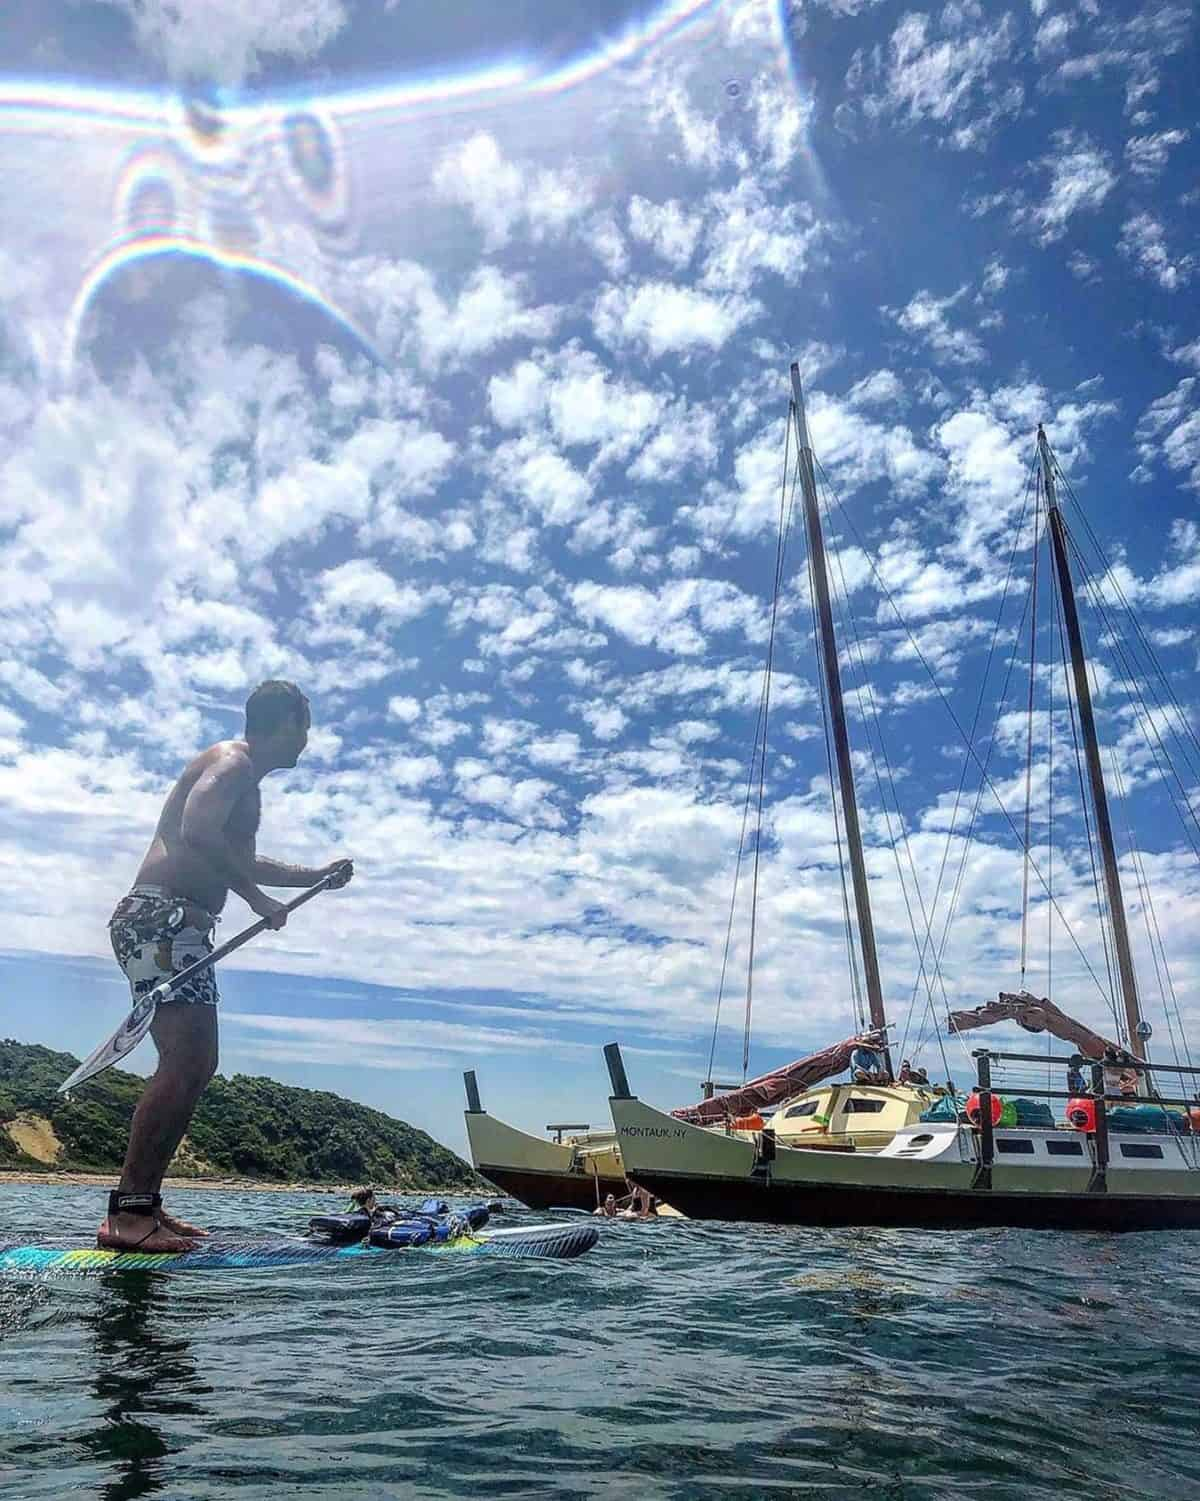 Paddler's perspective of a Sail and Swim trip on Mon Tiki Largo